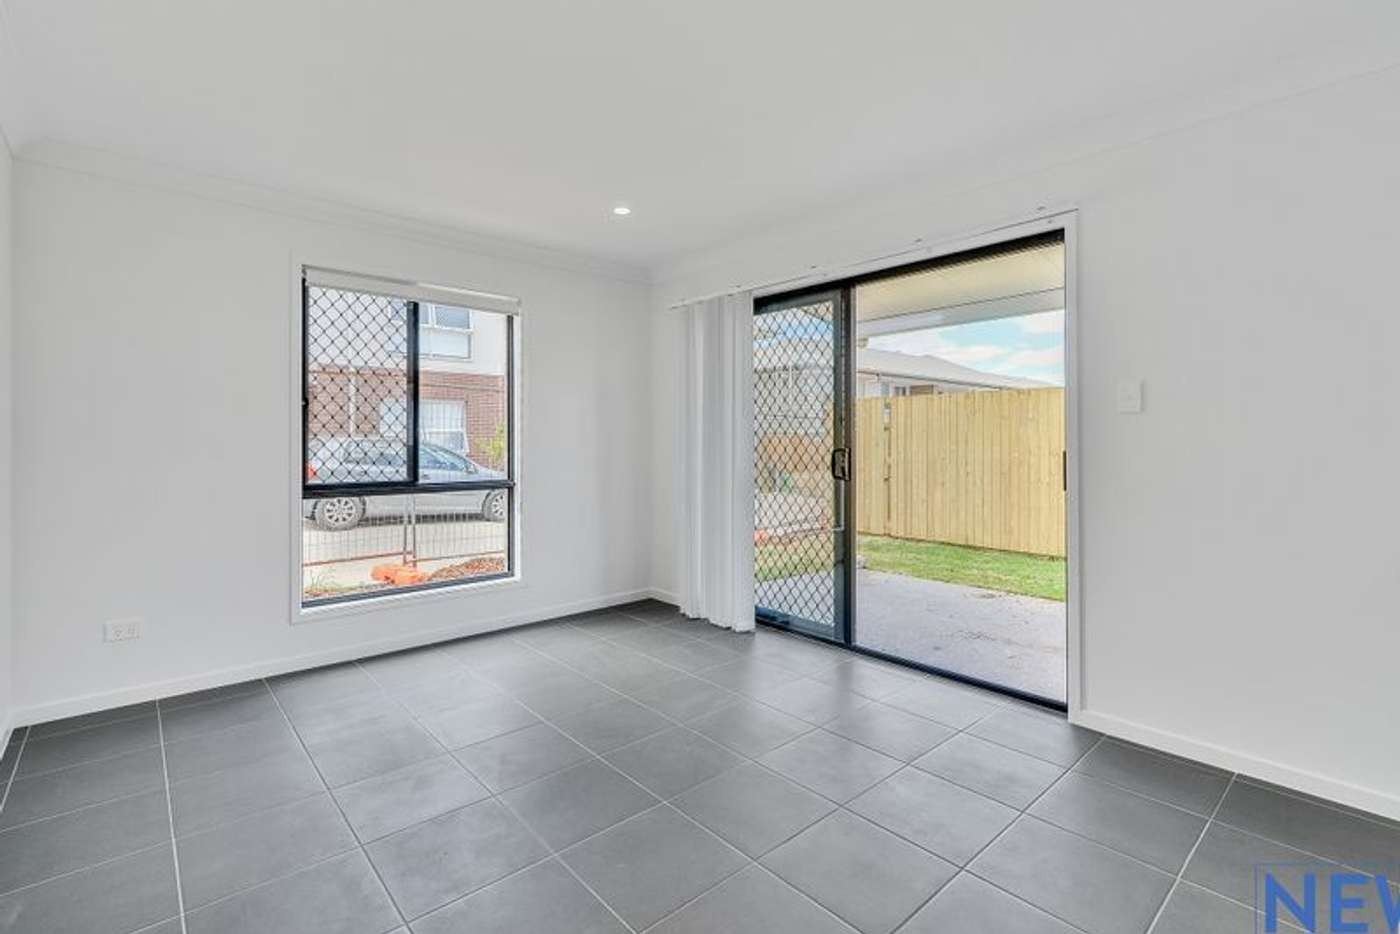 Sixth view of Homely townhouse listing, 72/15 Waratah Way, Morayfield QLD 4506